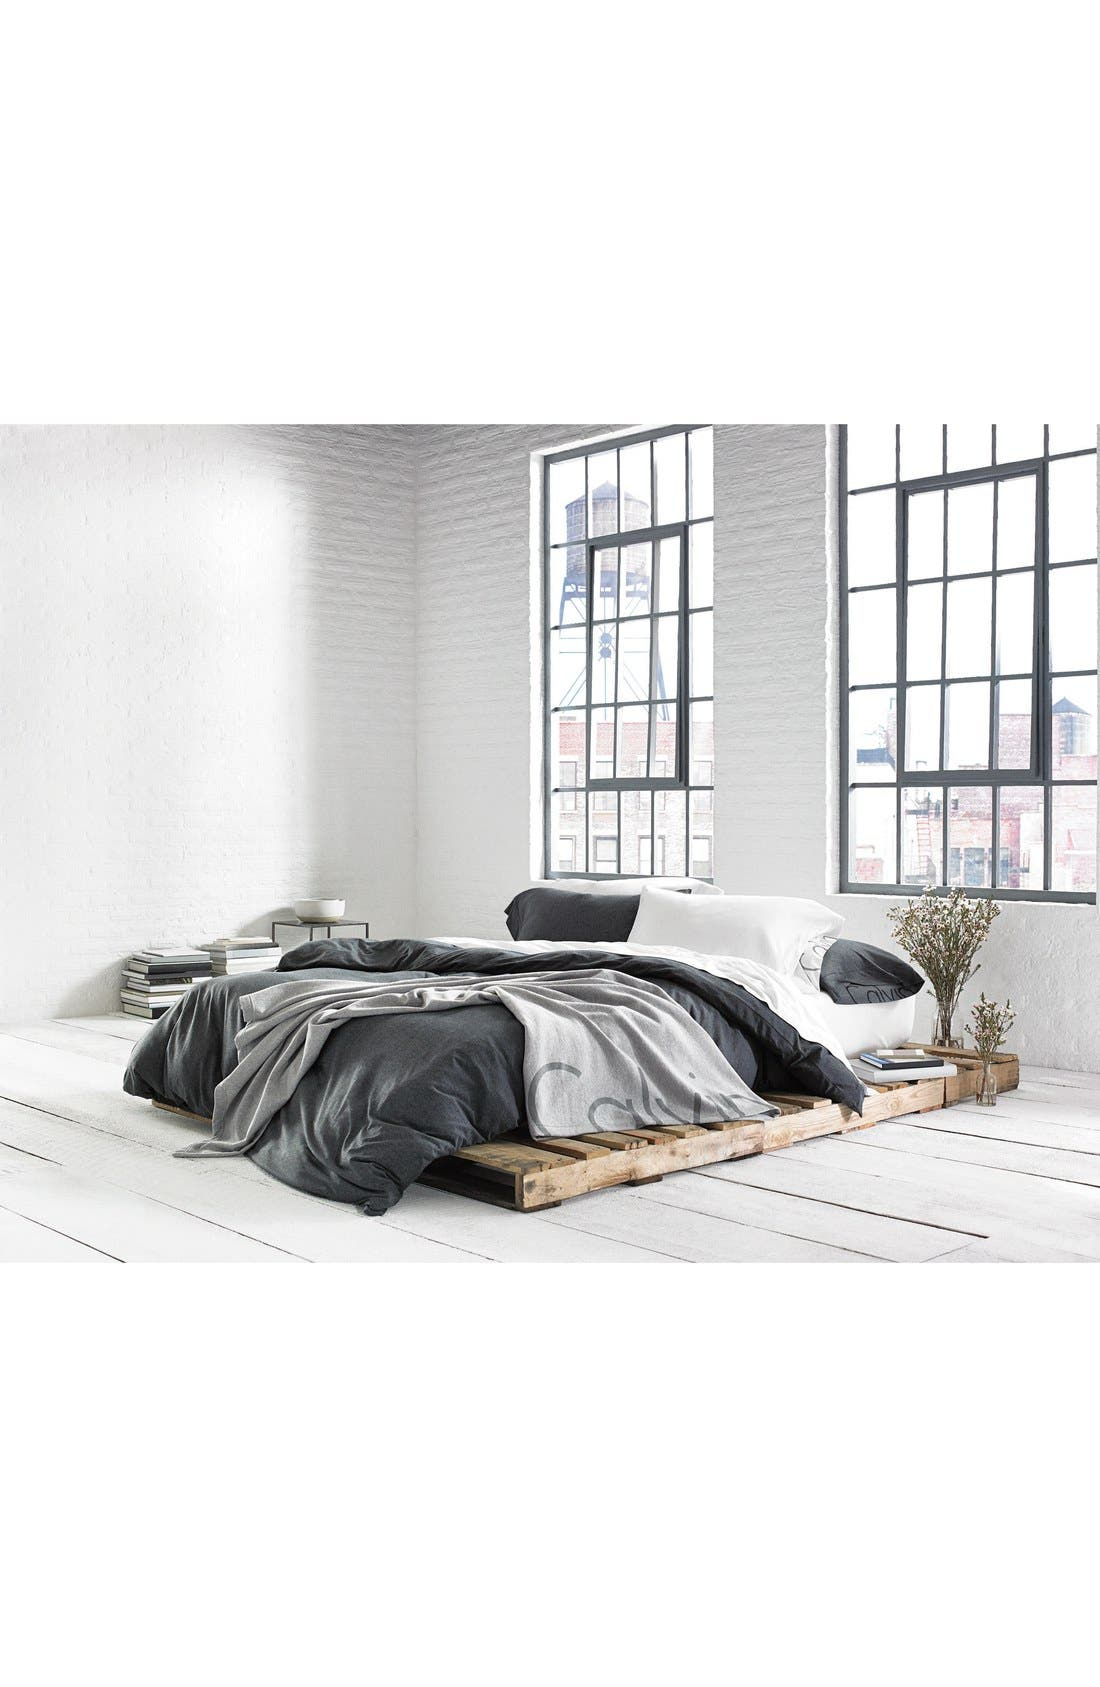 Calvin Klein 'Body' Bedding Collection